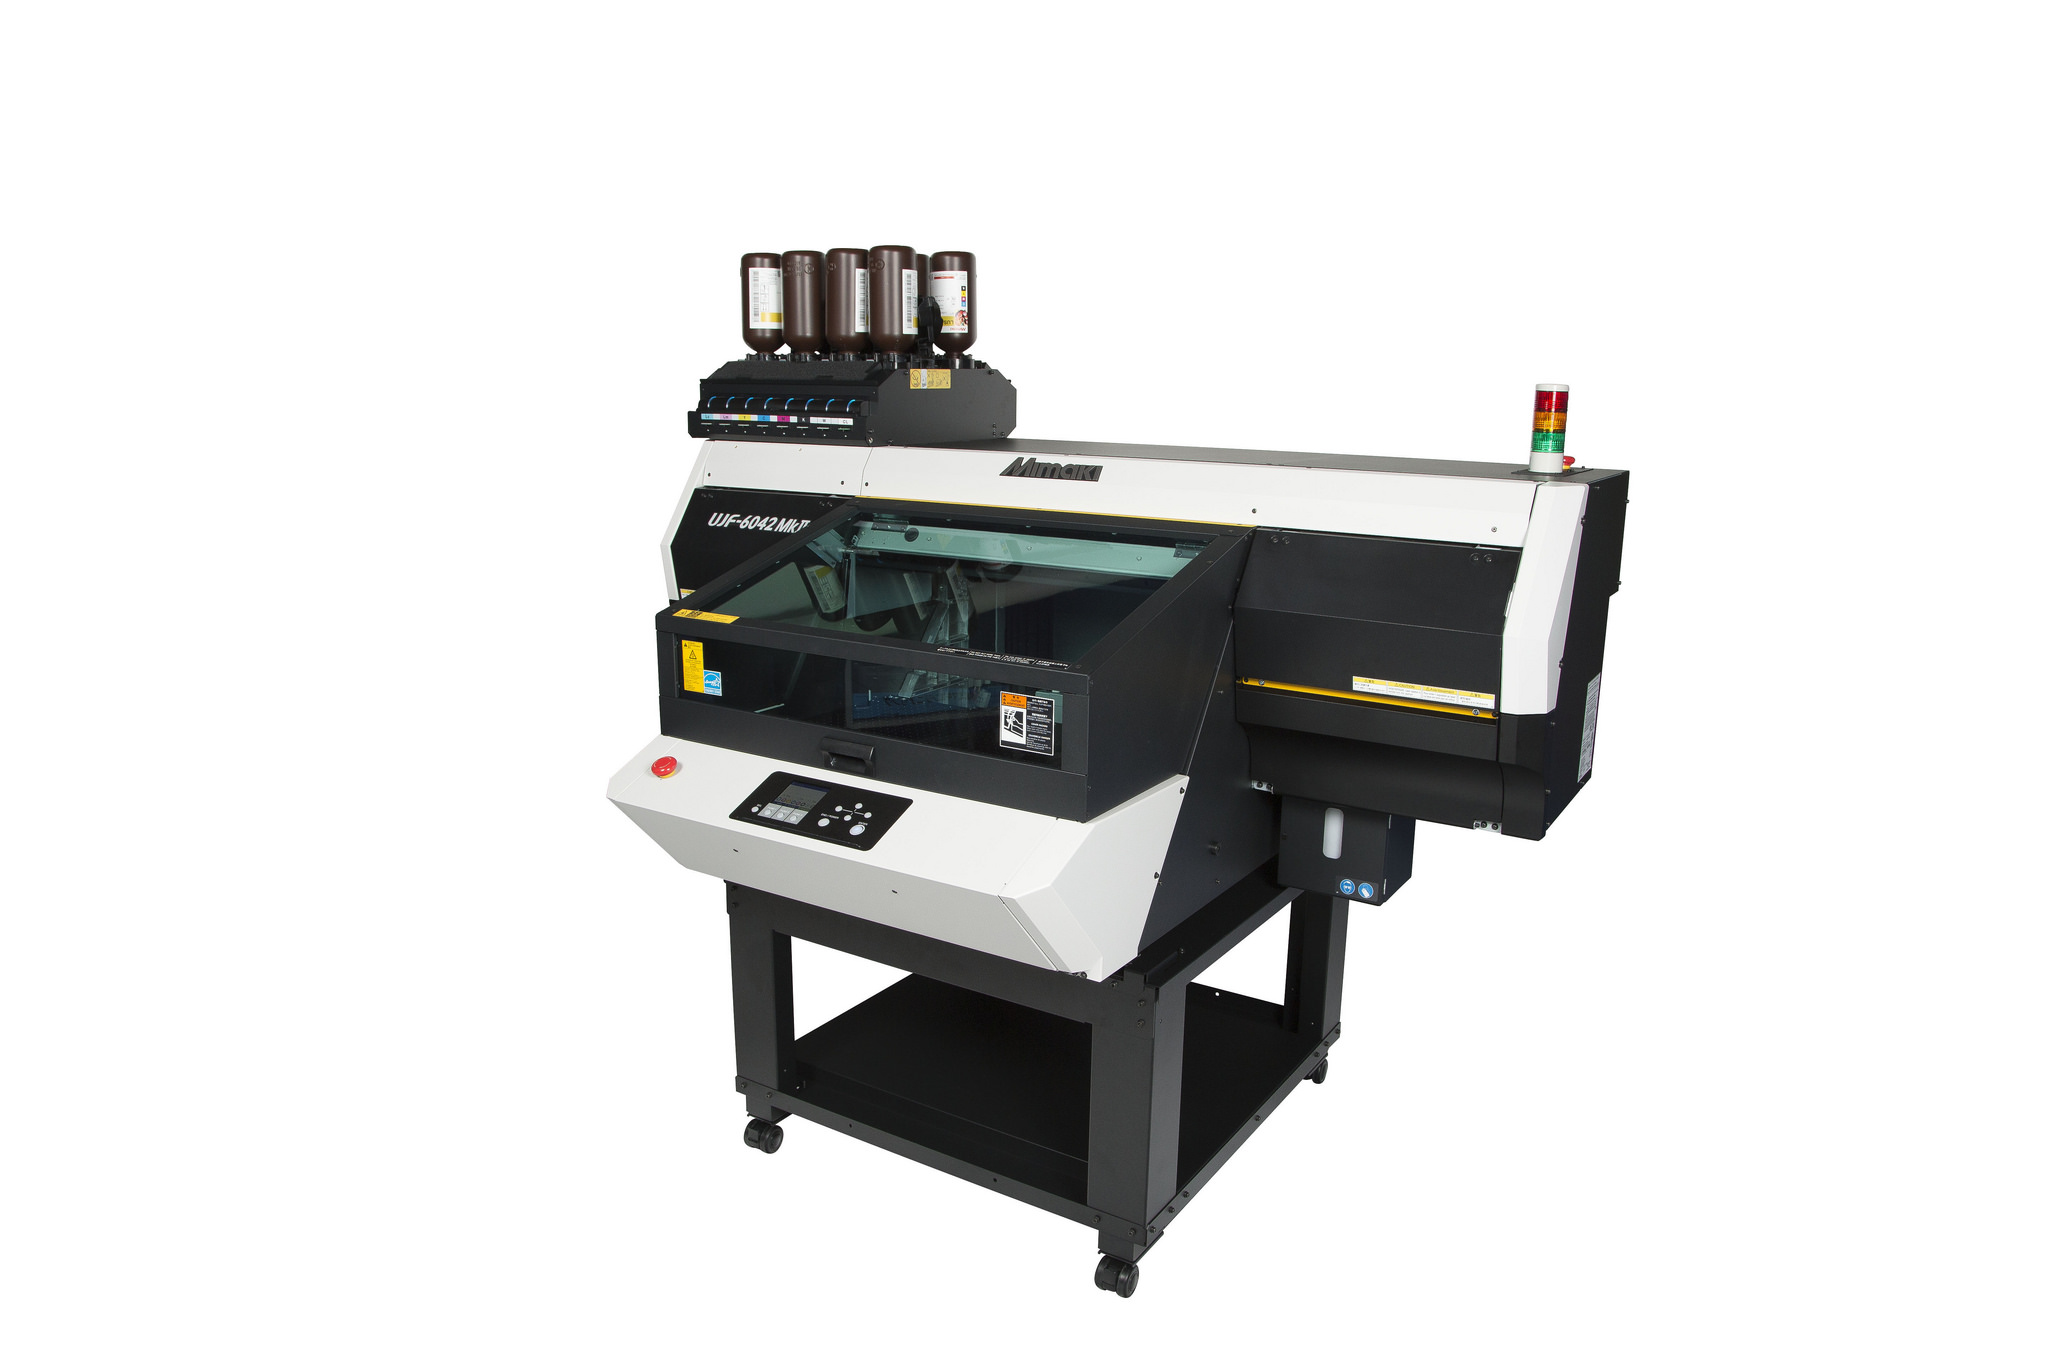 The recently announced Mimaki UJF-6042 MkII.